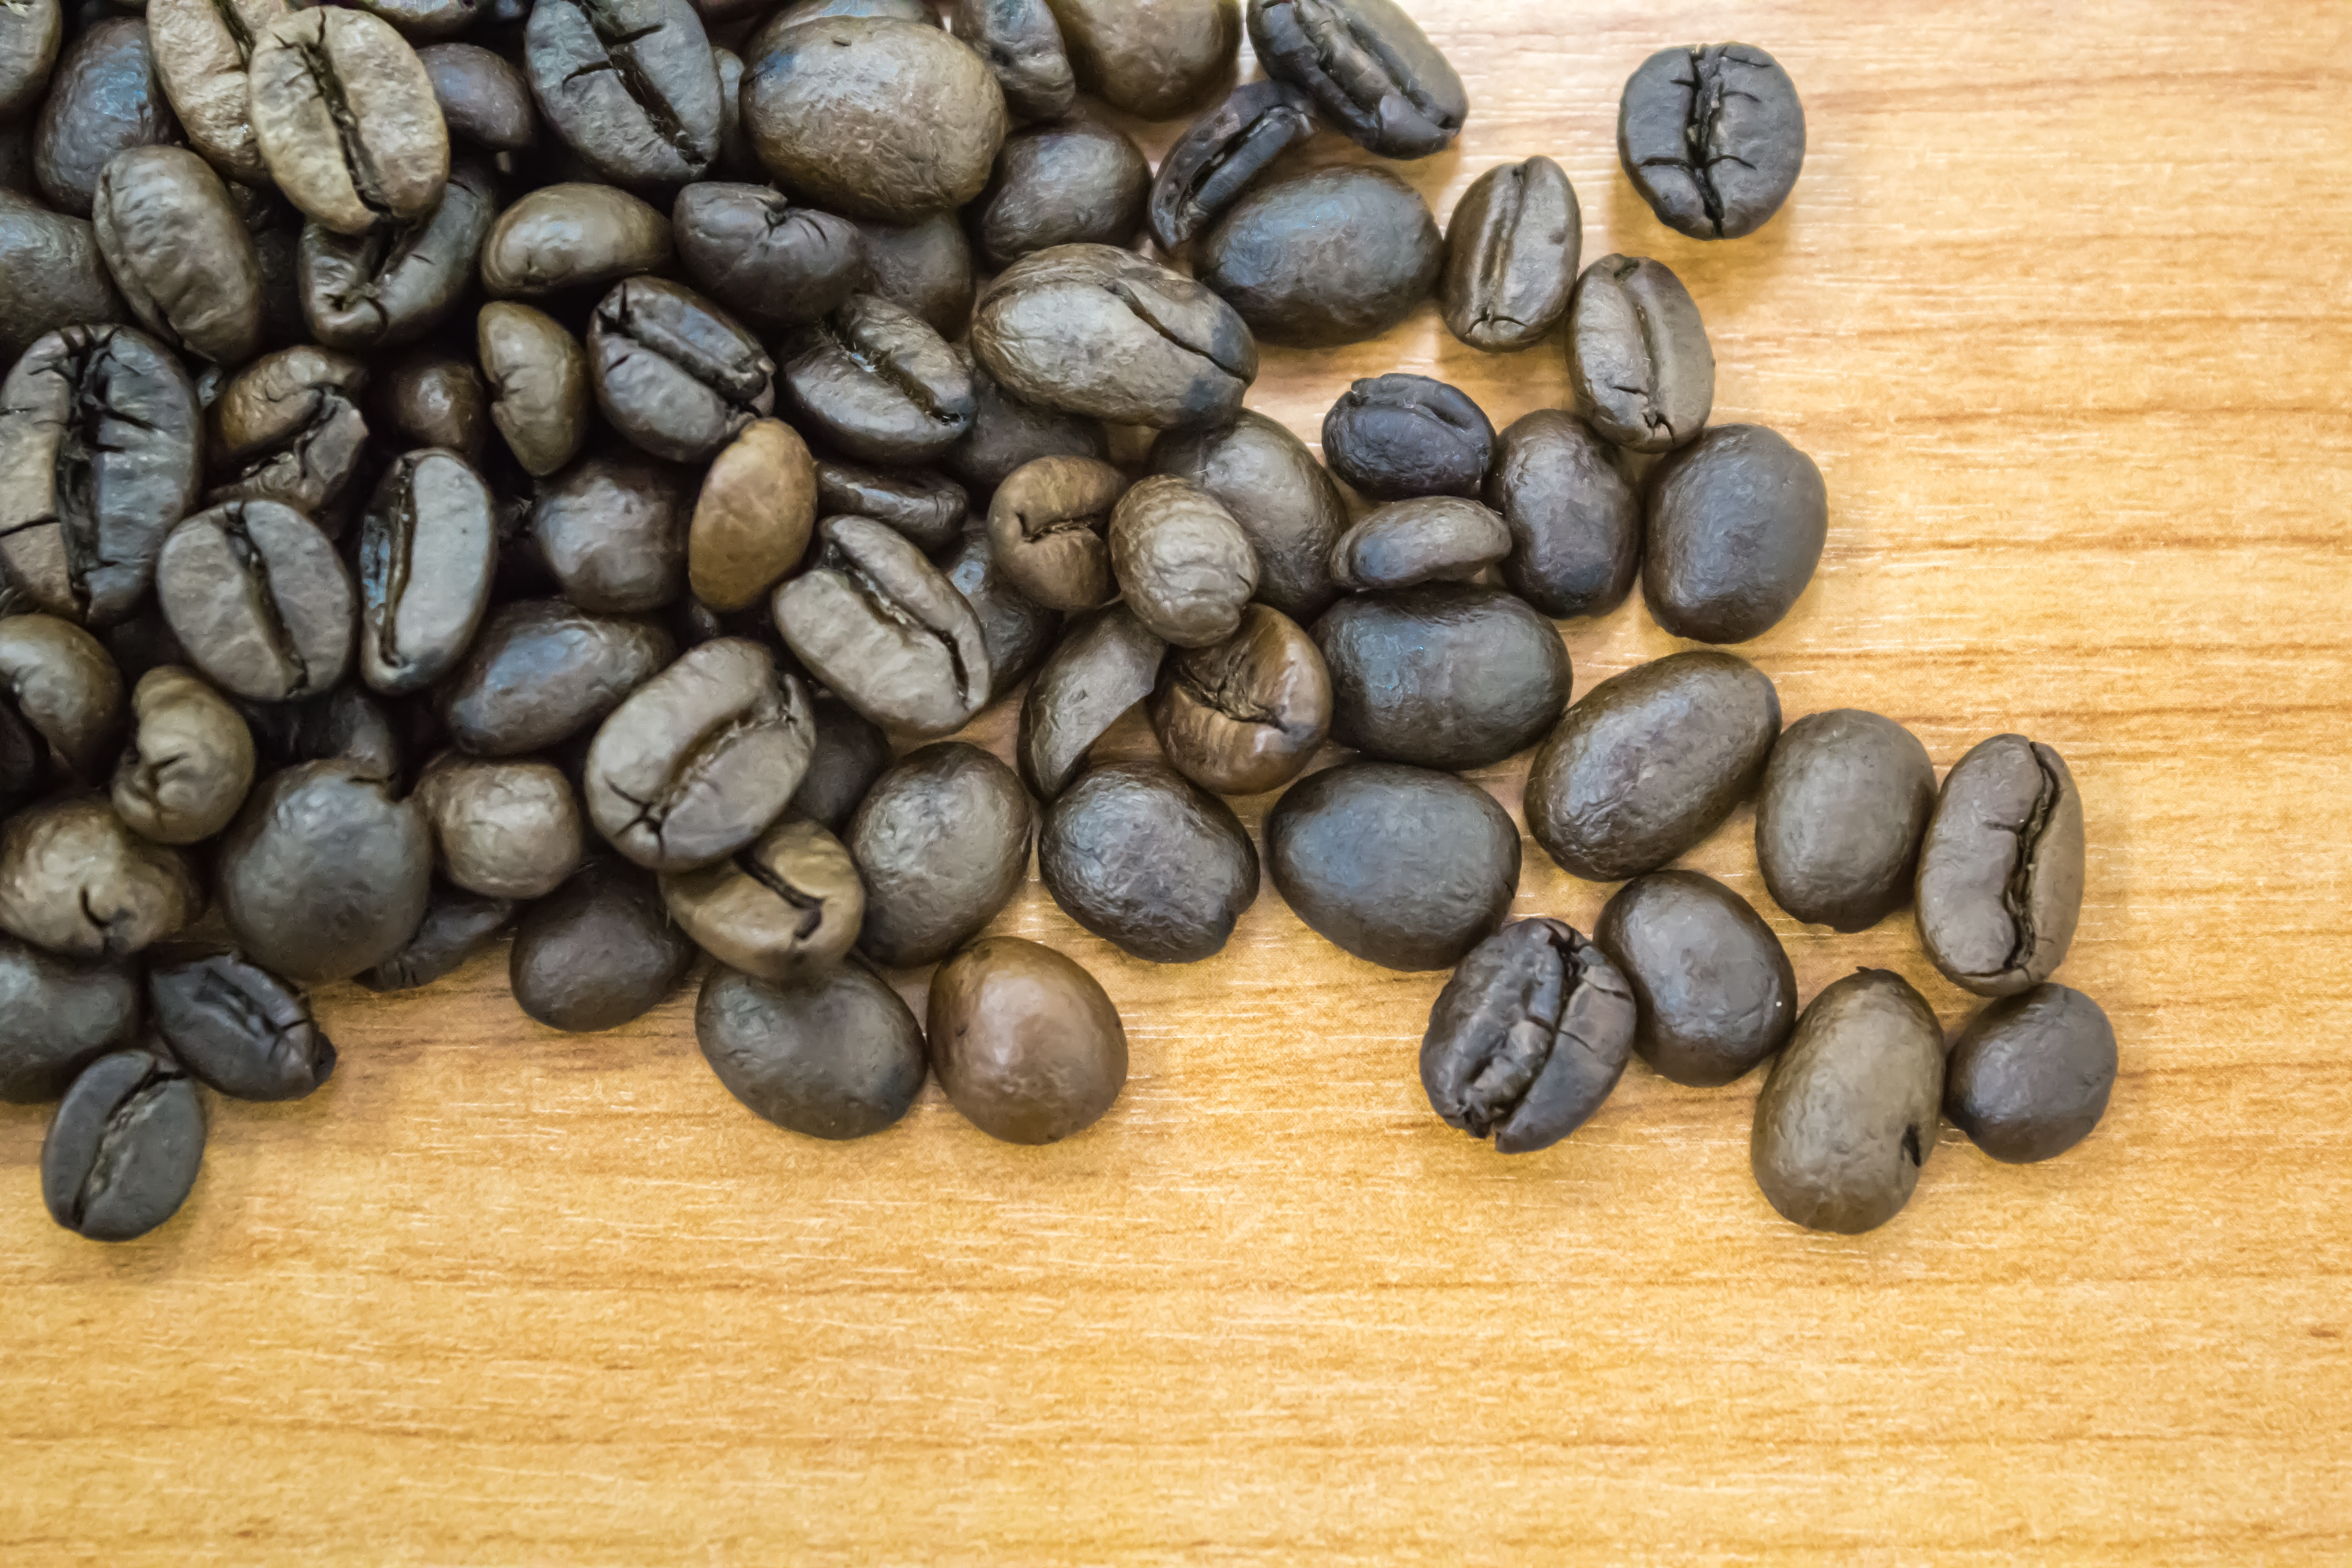 133643 download wallpaper Food, Coffee Beans, Coffee, Fried, Roasted screensavers and pictures for free